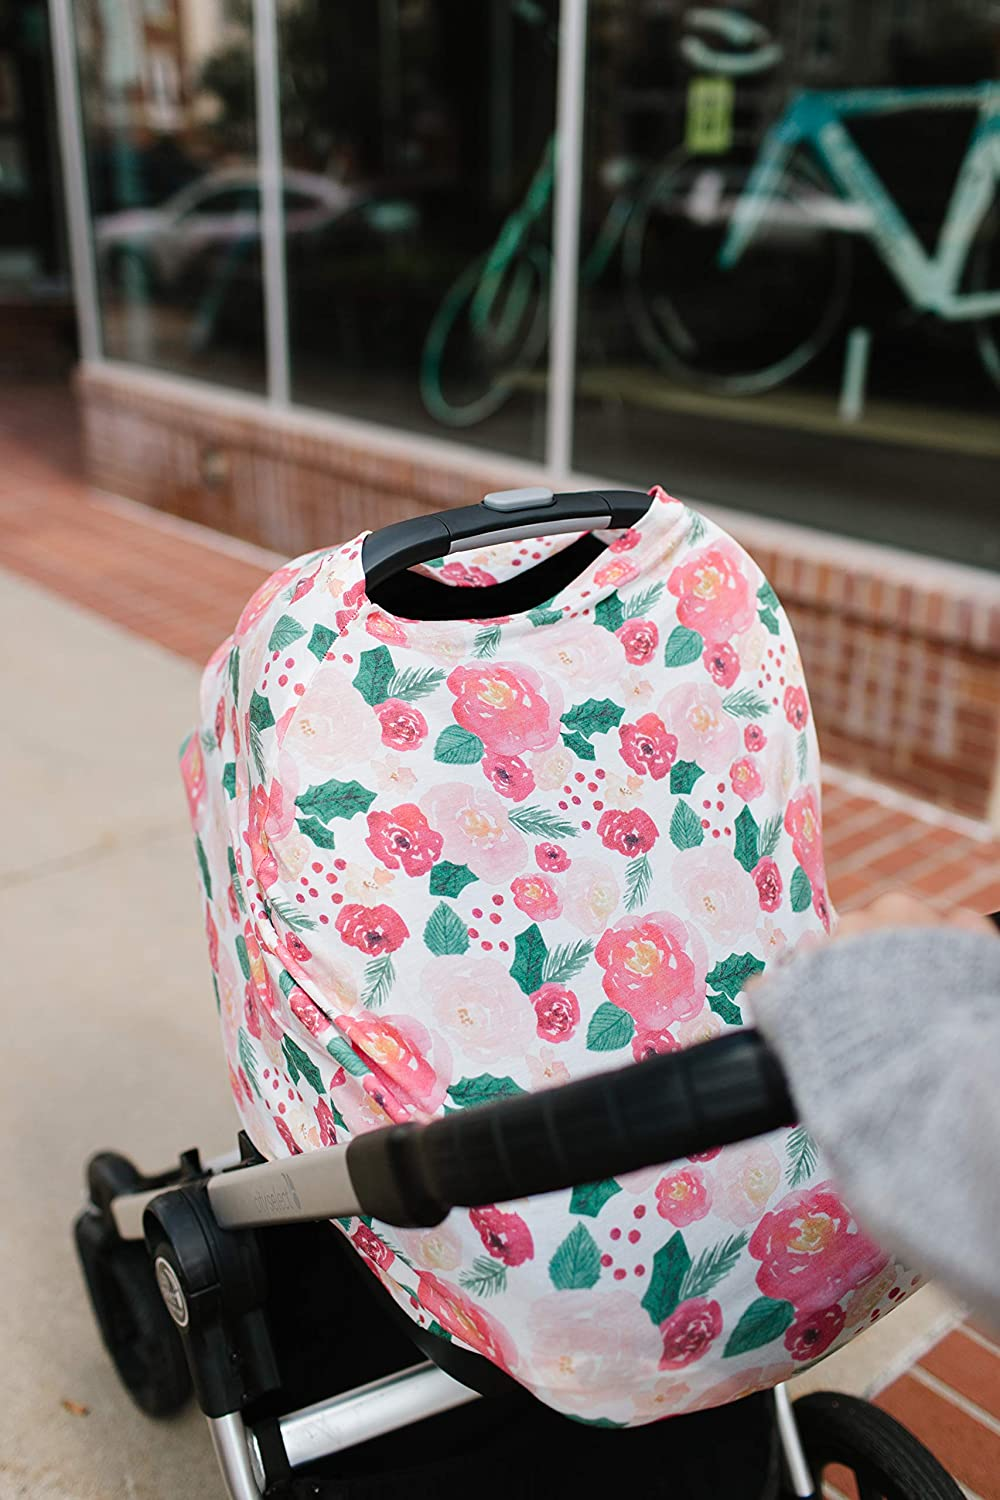 Baby Car Seat Cover Canopy and Nursing Cover Multi-Use Stretchy 5 in 1 GiftHolly by Copper Pearl